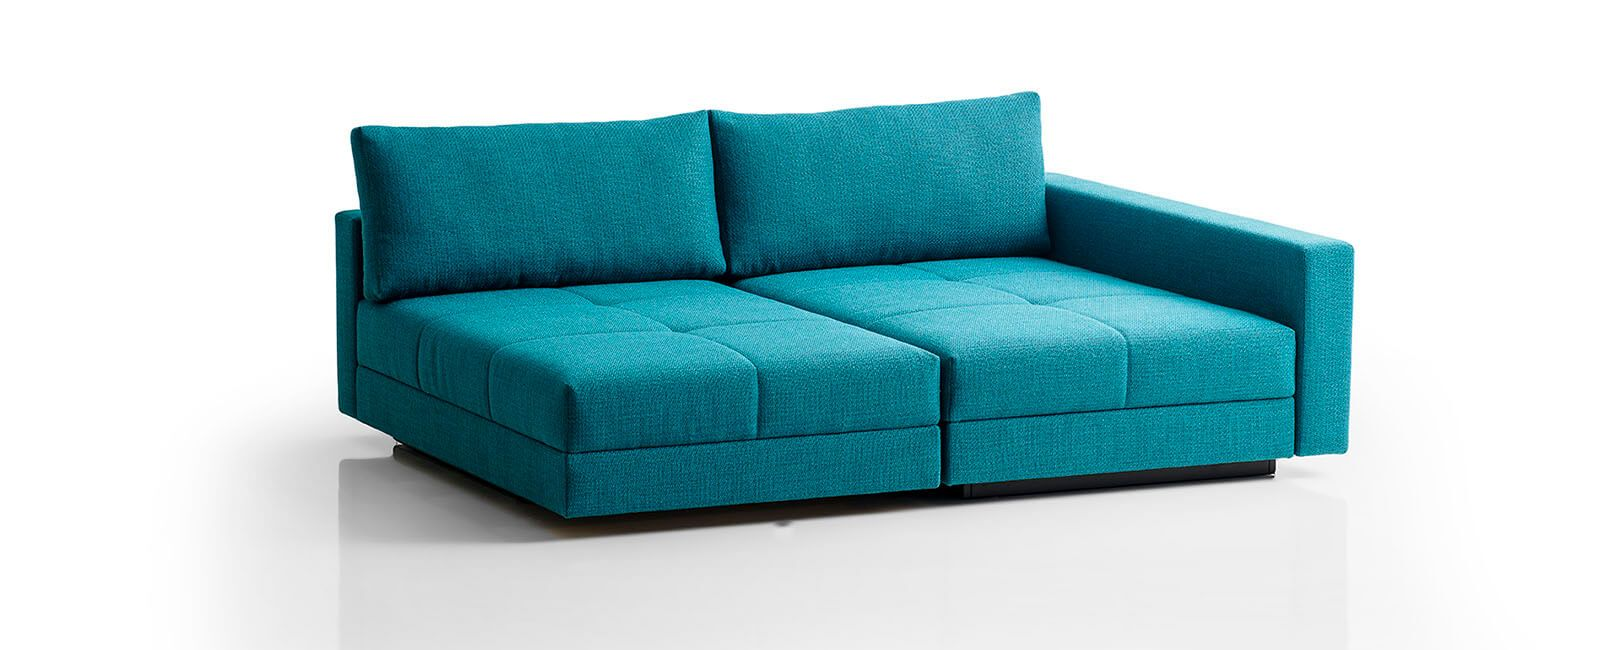 Franz Fertig Cocco Ecksofa Cocco Mit Bettkasten By Franz Fertig Dream Home Sofa